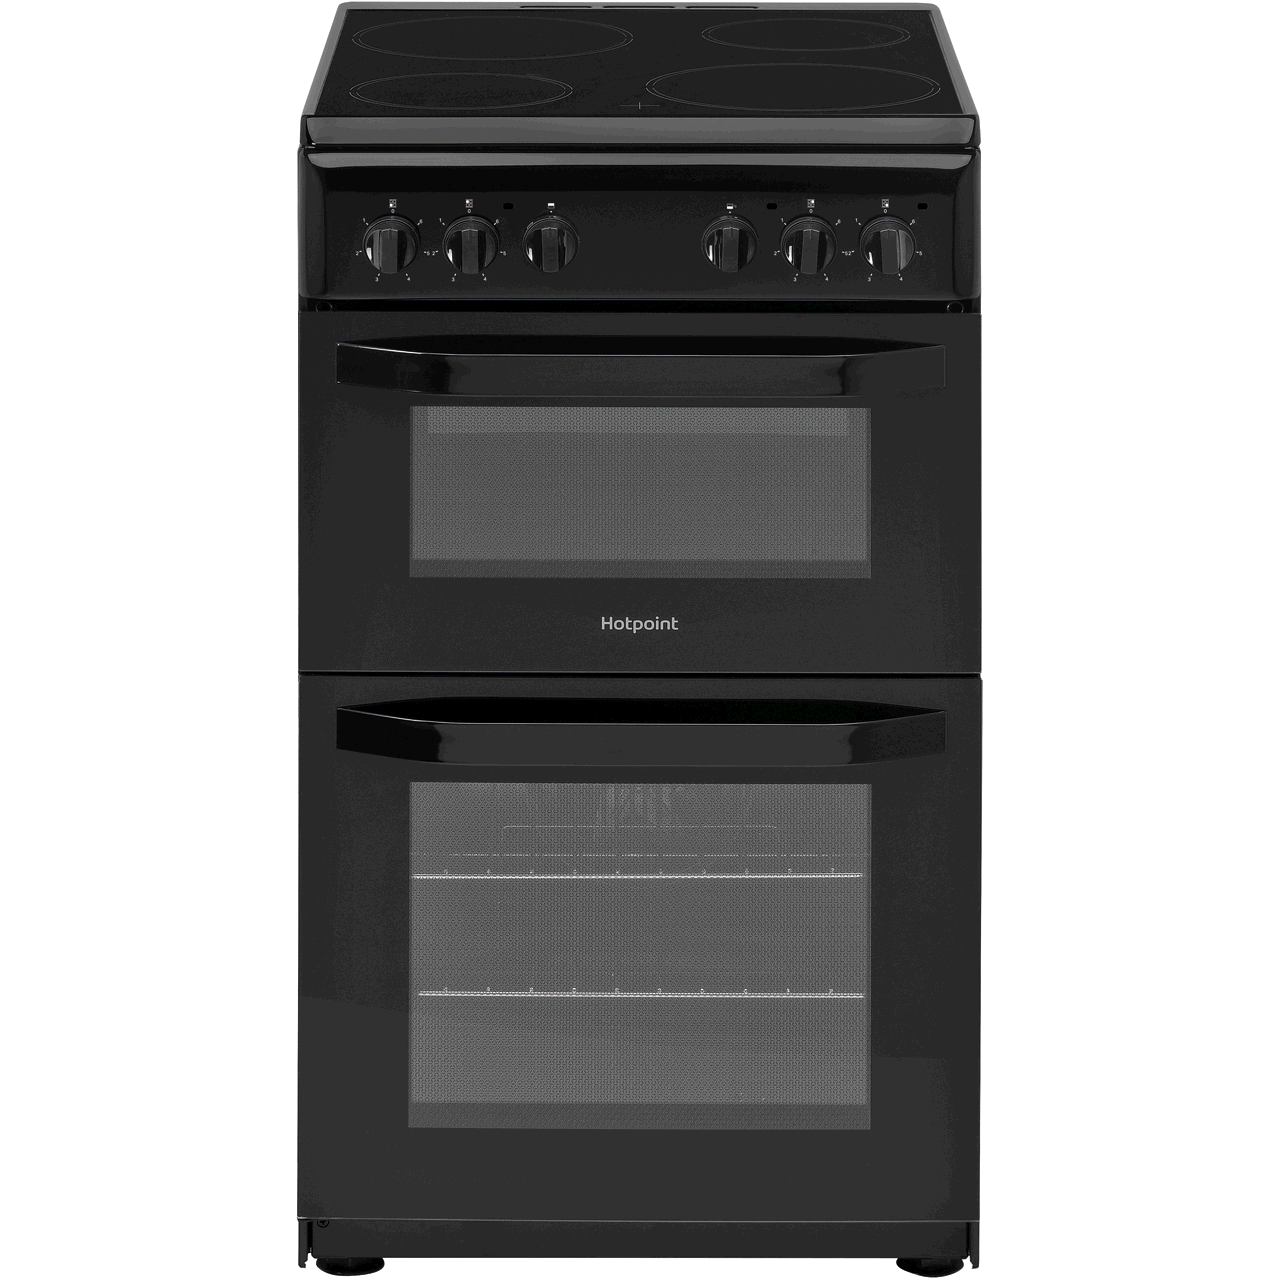 Hotpoint Cloe HD5V92KCB 50cm Electric Cooker with Ceramic Hob - Black B Rated